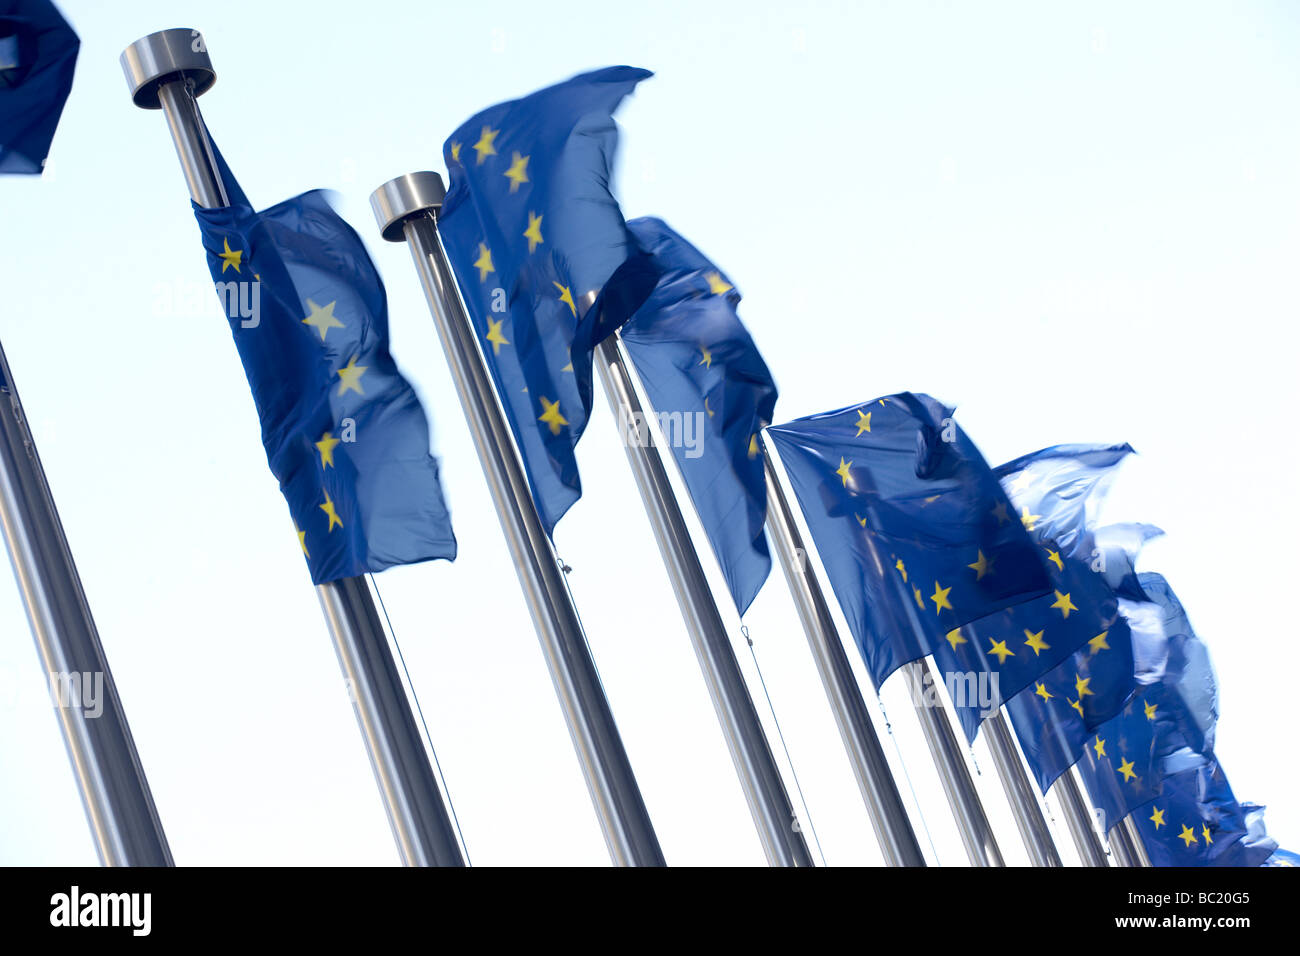 Flags Flying Outside European Commission Building - Stock Image